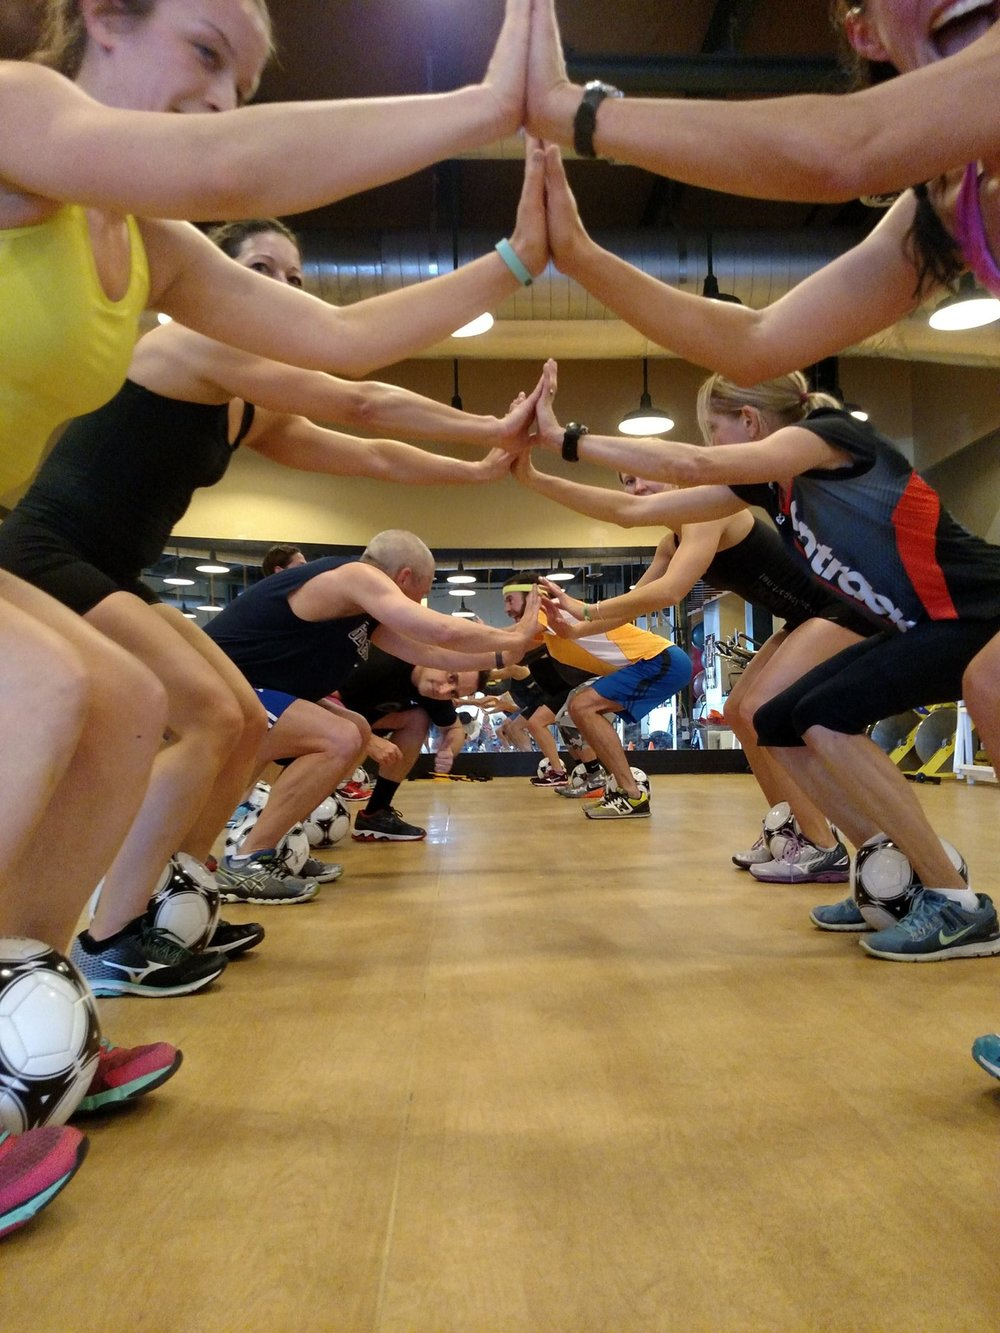 People forming tunnel with hands during a fitness class